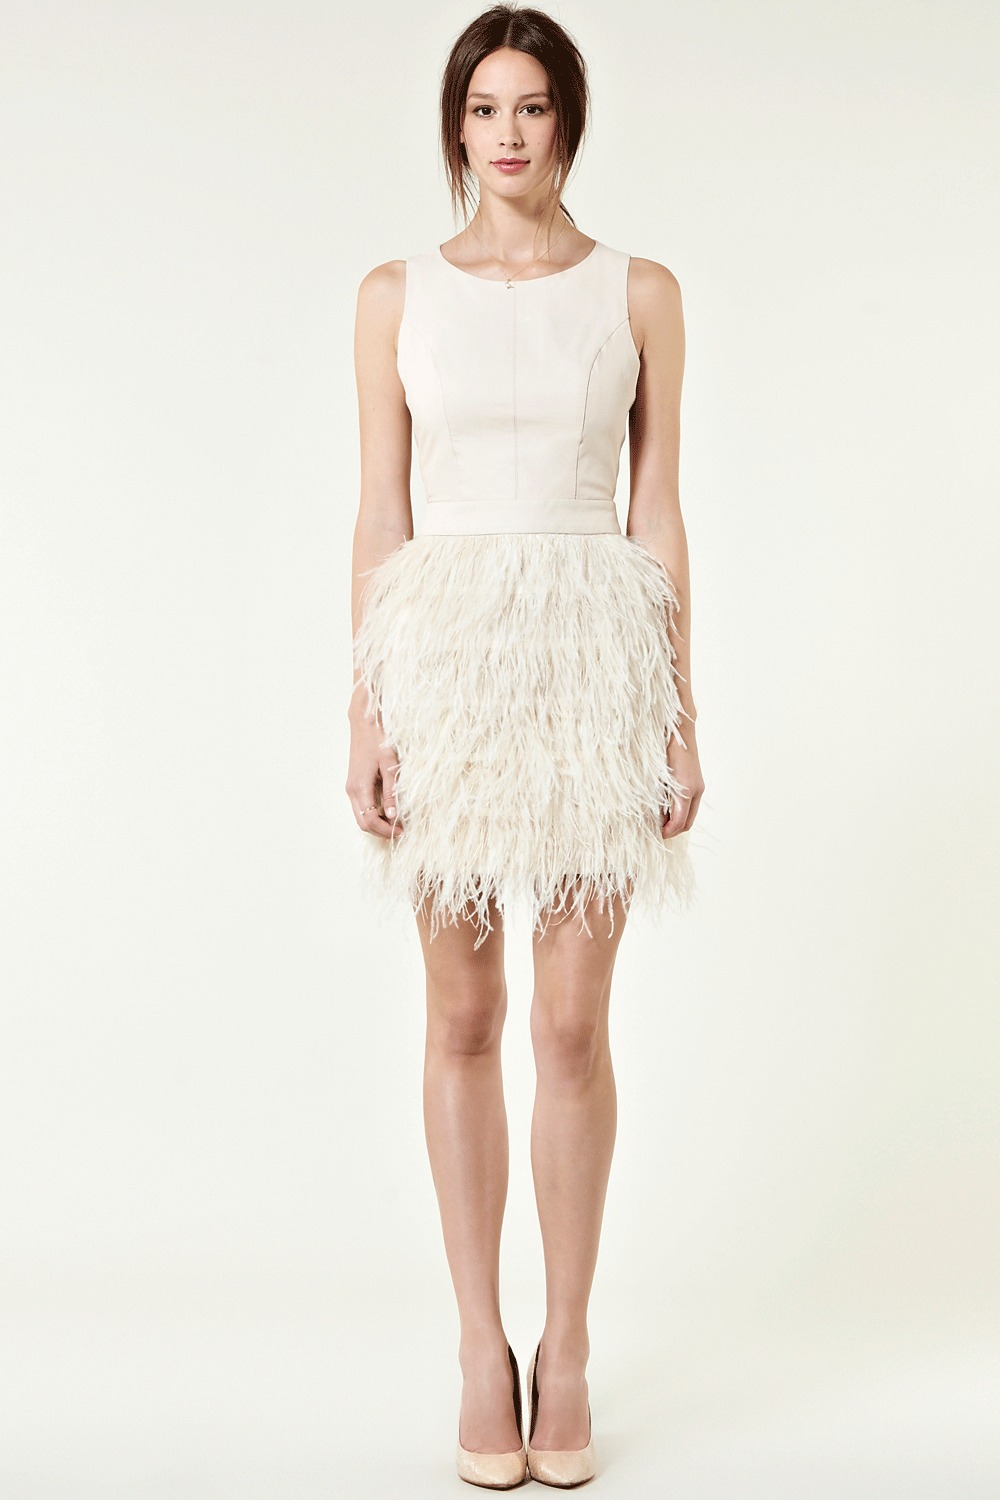 Feather And Leather Dress - style: shift; length: mid thigh; neckline: round neck; pattern: plain, lightly patterned, patterned/print; sleeve style: sleeveless; waist detail: fitted waist; predominant colour: ivory; occasions: evening, occasion; fit: body skimming; fibres: leather - 100%; material texture: jersey; hip detail: added detail/embellishment at hip; sleeve length: sleeveless; pattern type: fabric; pattern size: small & light; texture group: jersey - stretchy/drapey